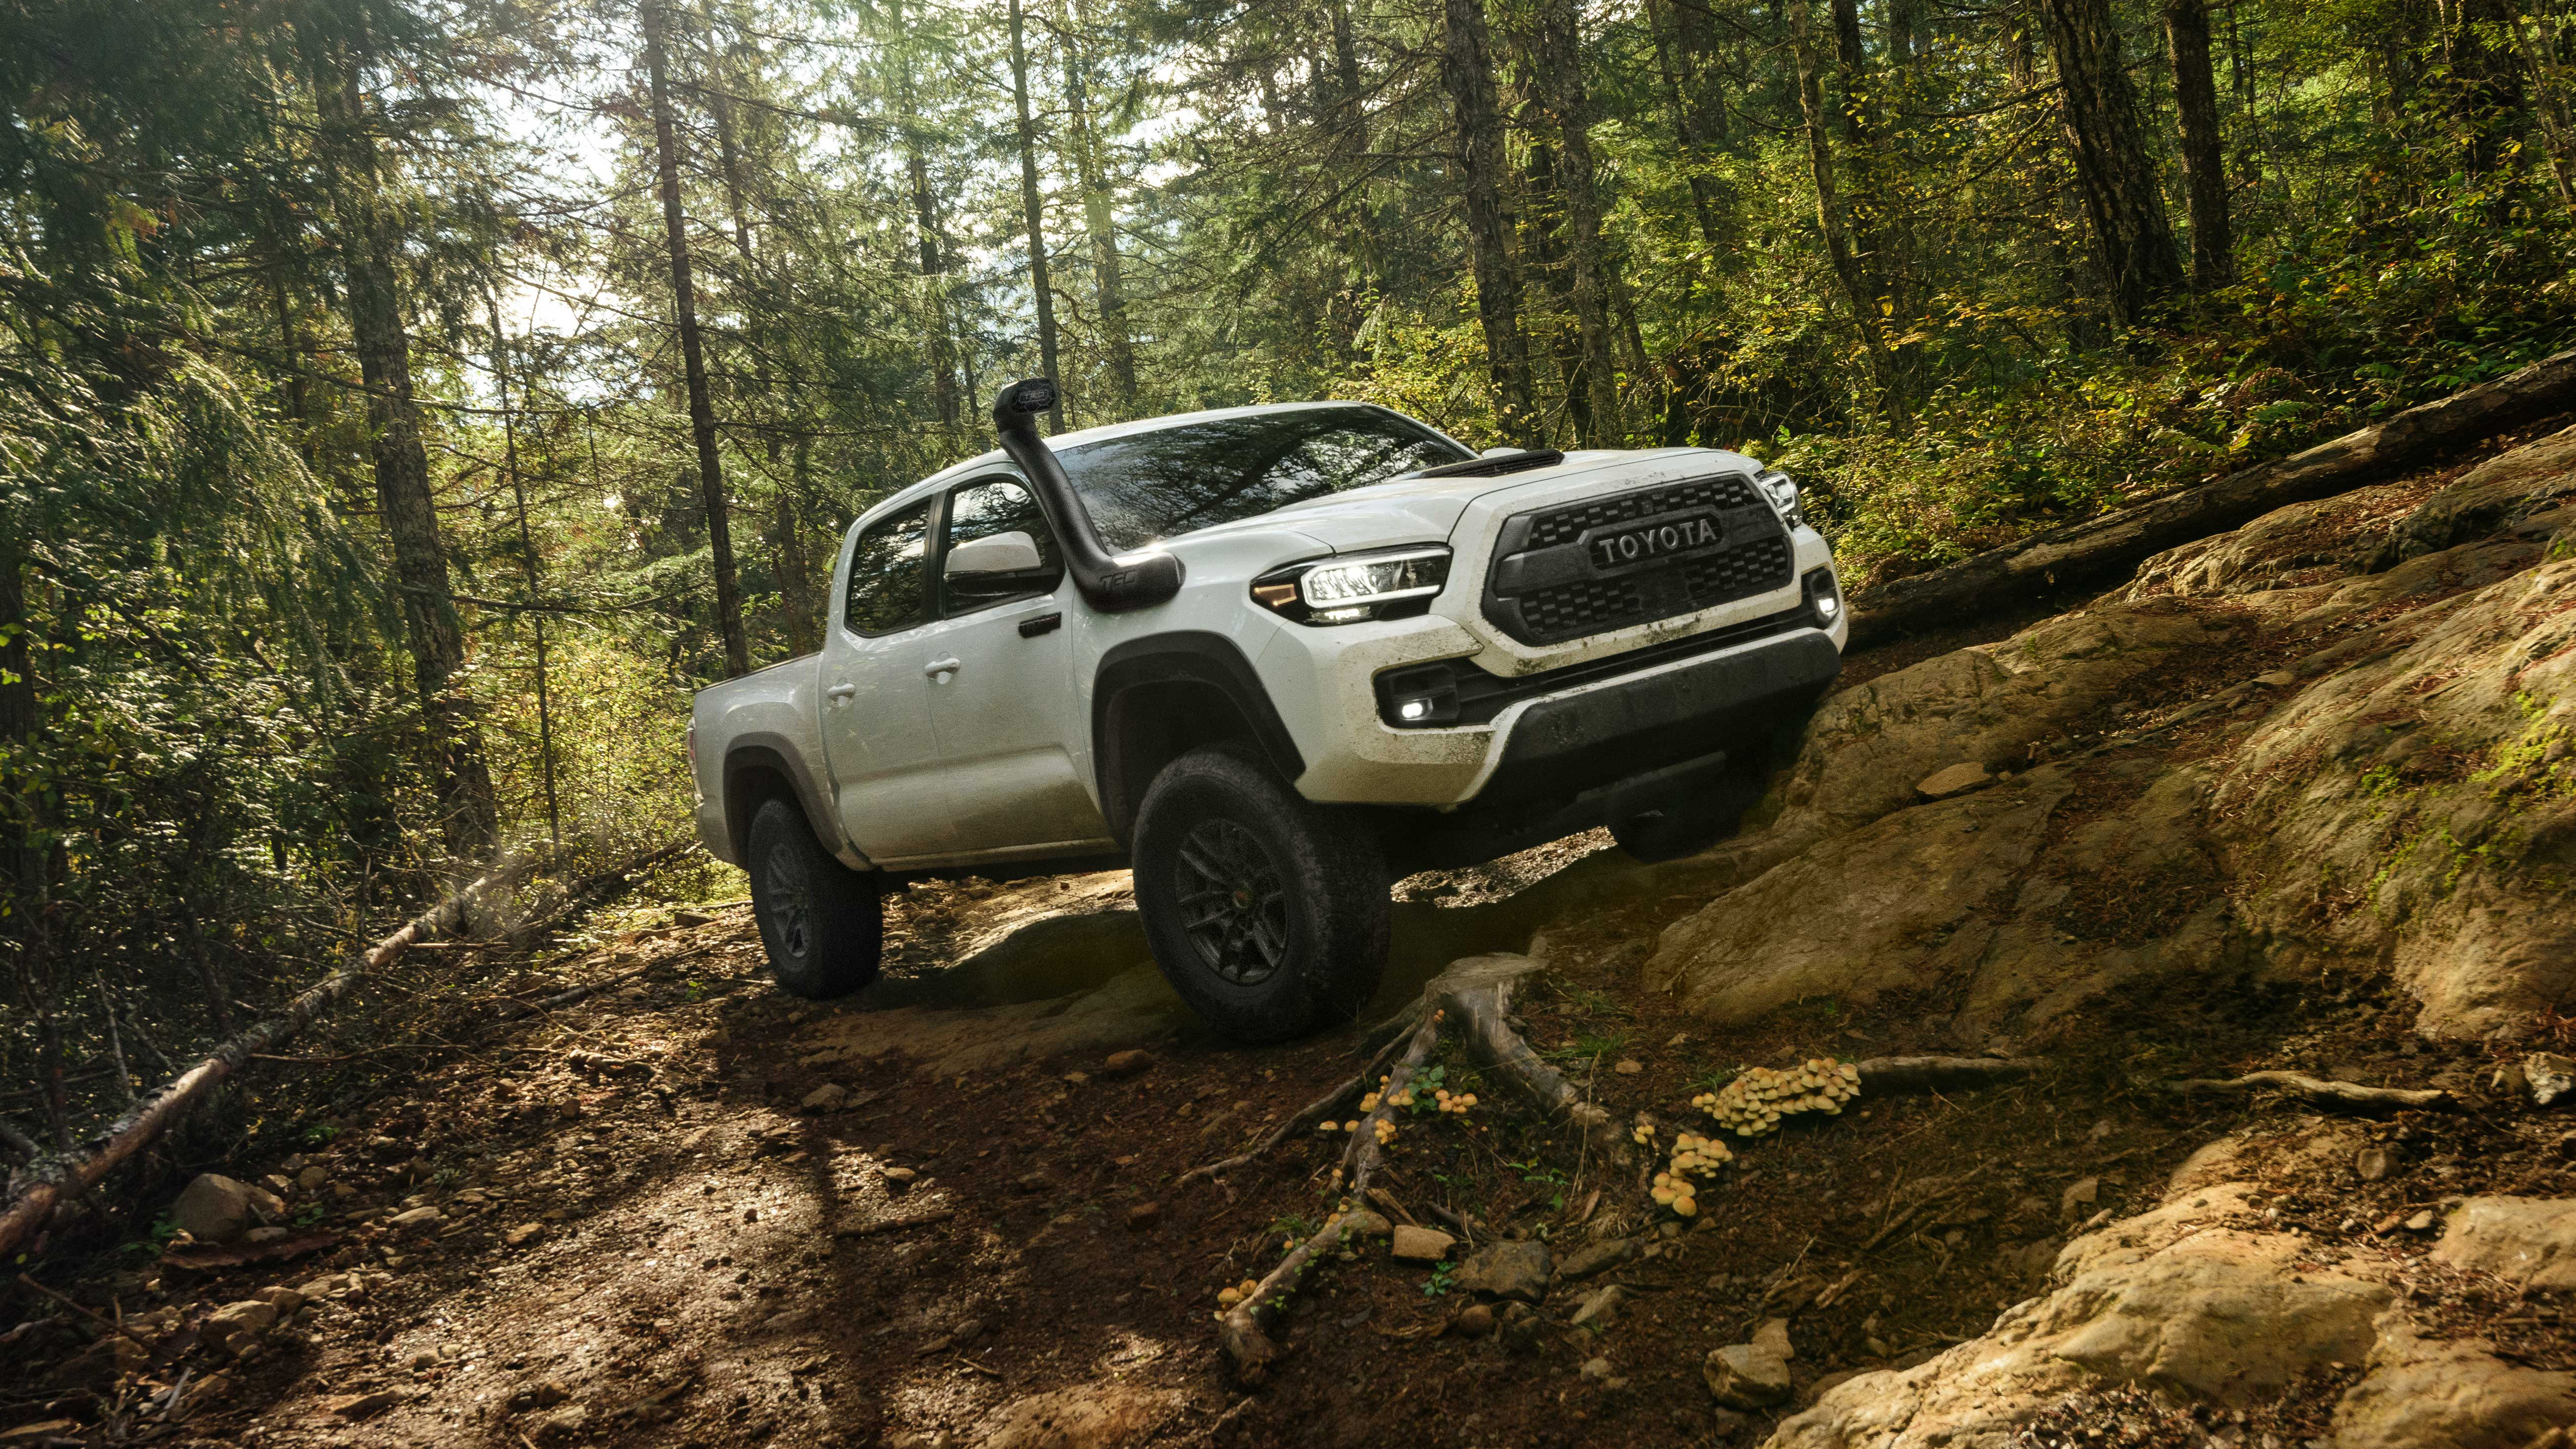 2020 Toyota Tacoma Trd Pro Double Cab 4k 5k Wallpaper Hd Car Wallpapers Id 11985